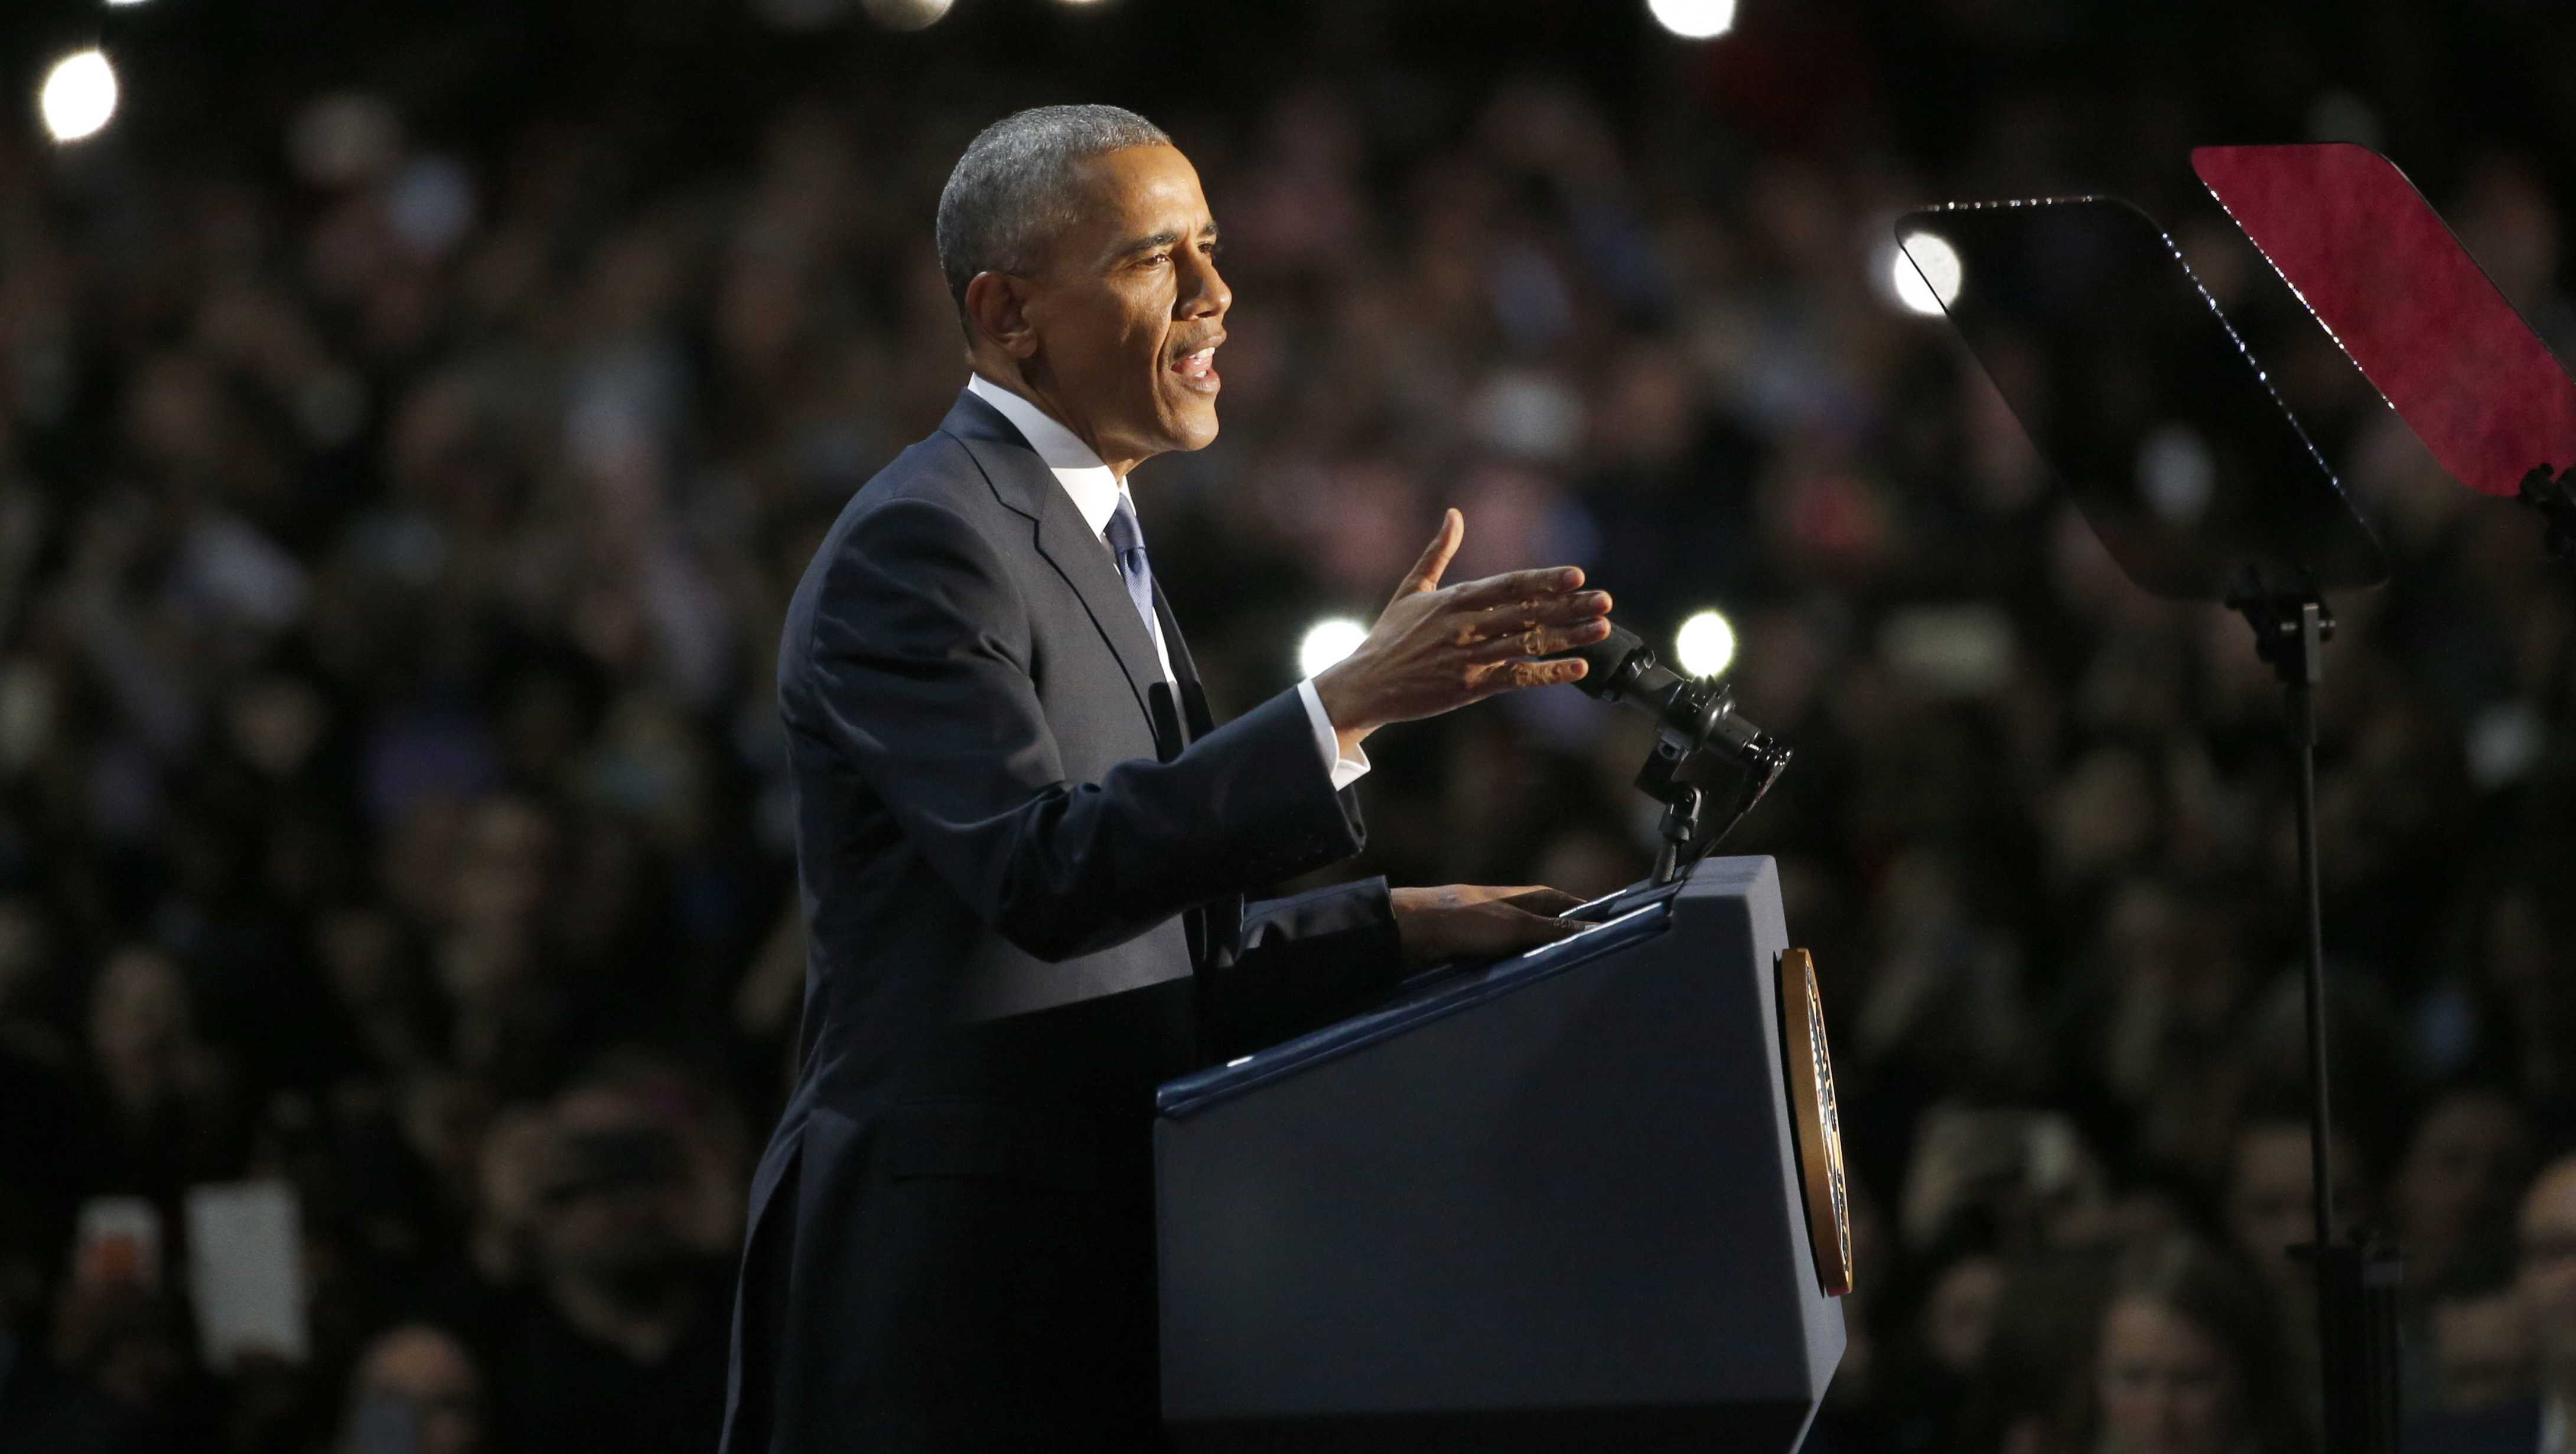 President Barack Obama delivered his farewell address in Chicago.